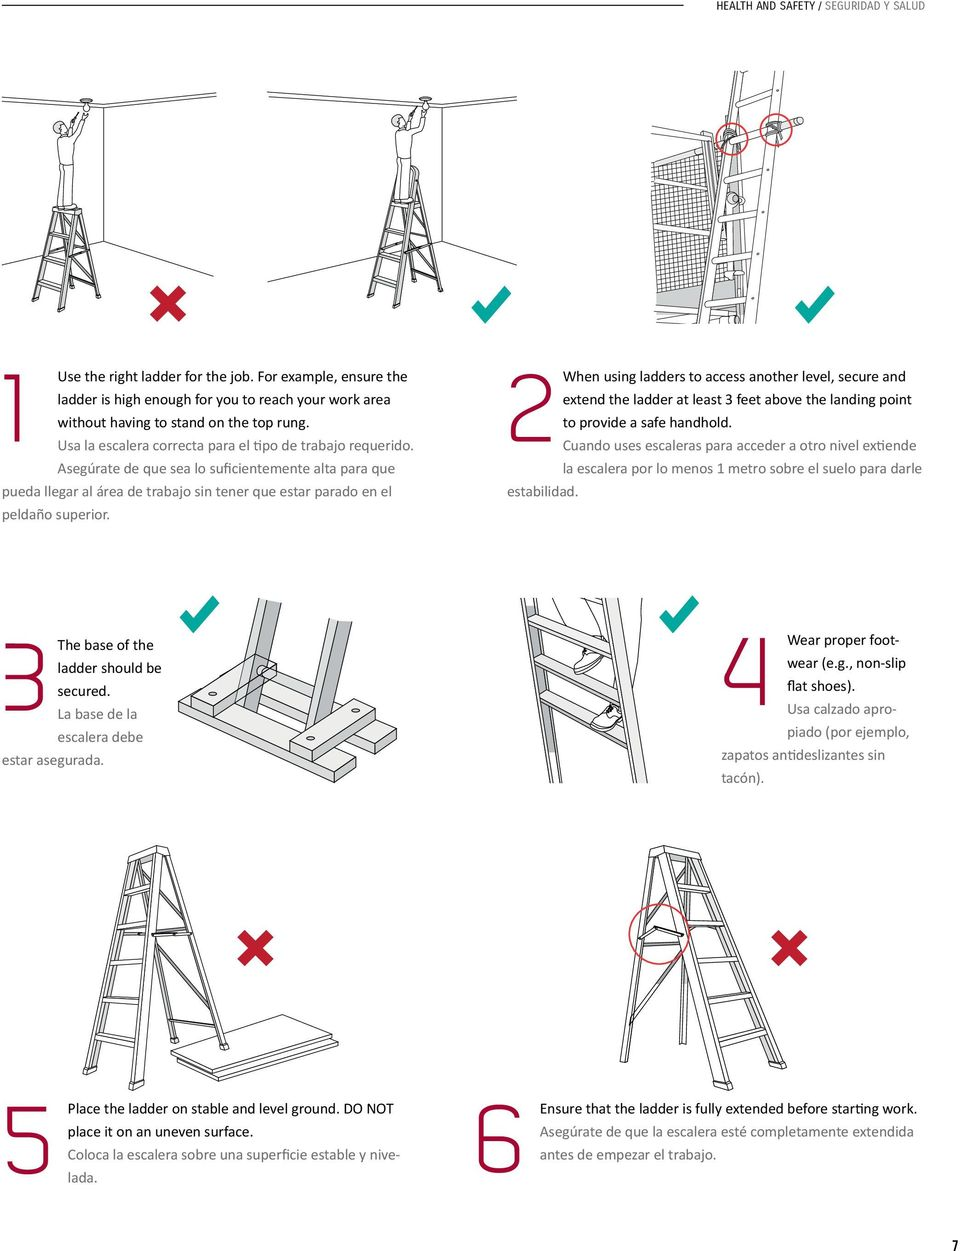 estabilidad. When using ladders to access another level, secure and extend the ladder at least 3 feet above the landing point to provide a safe handhold.